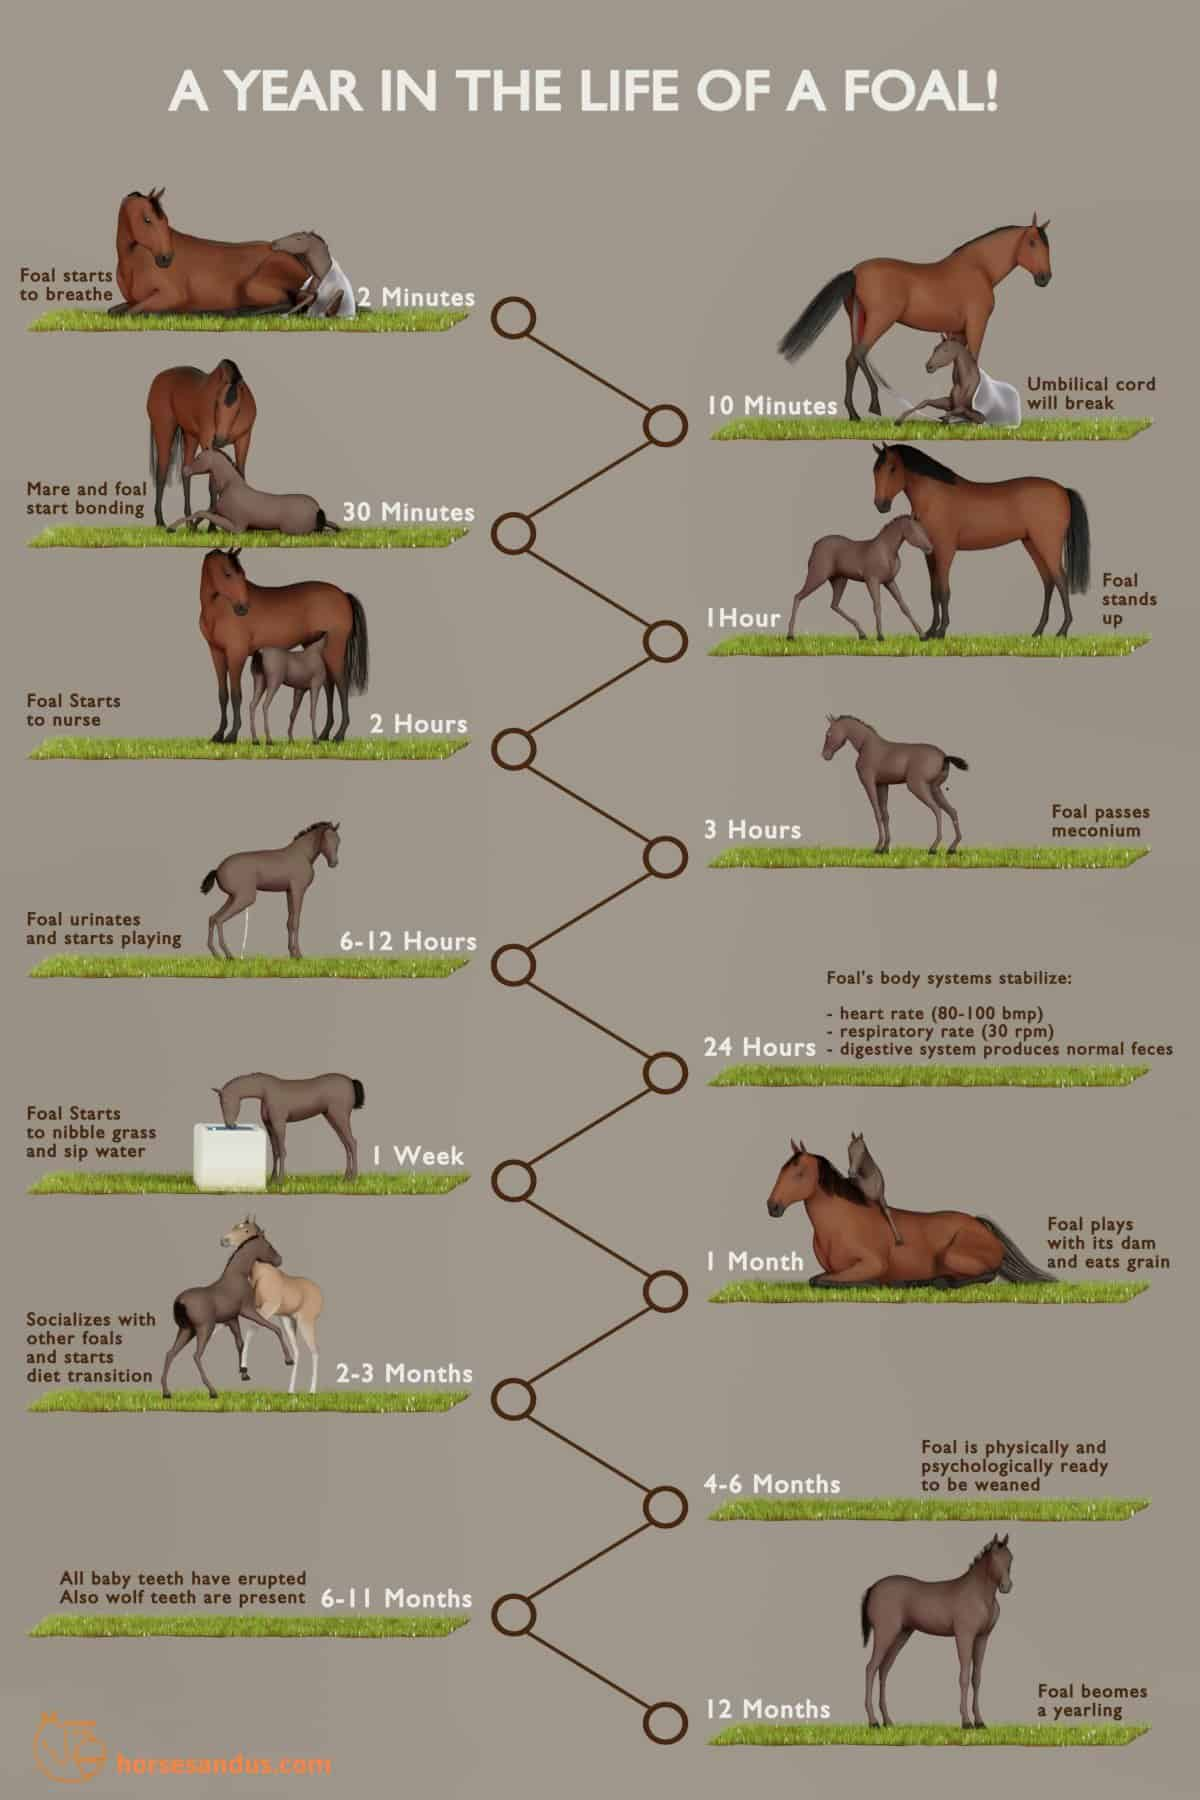 First year of a foal´s life